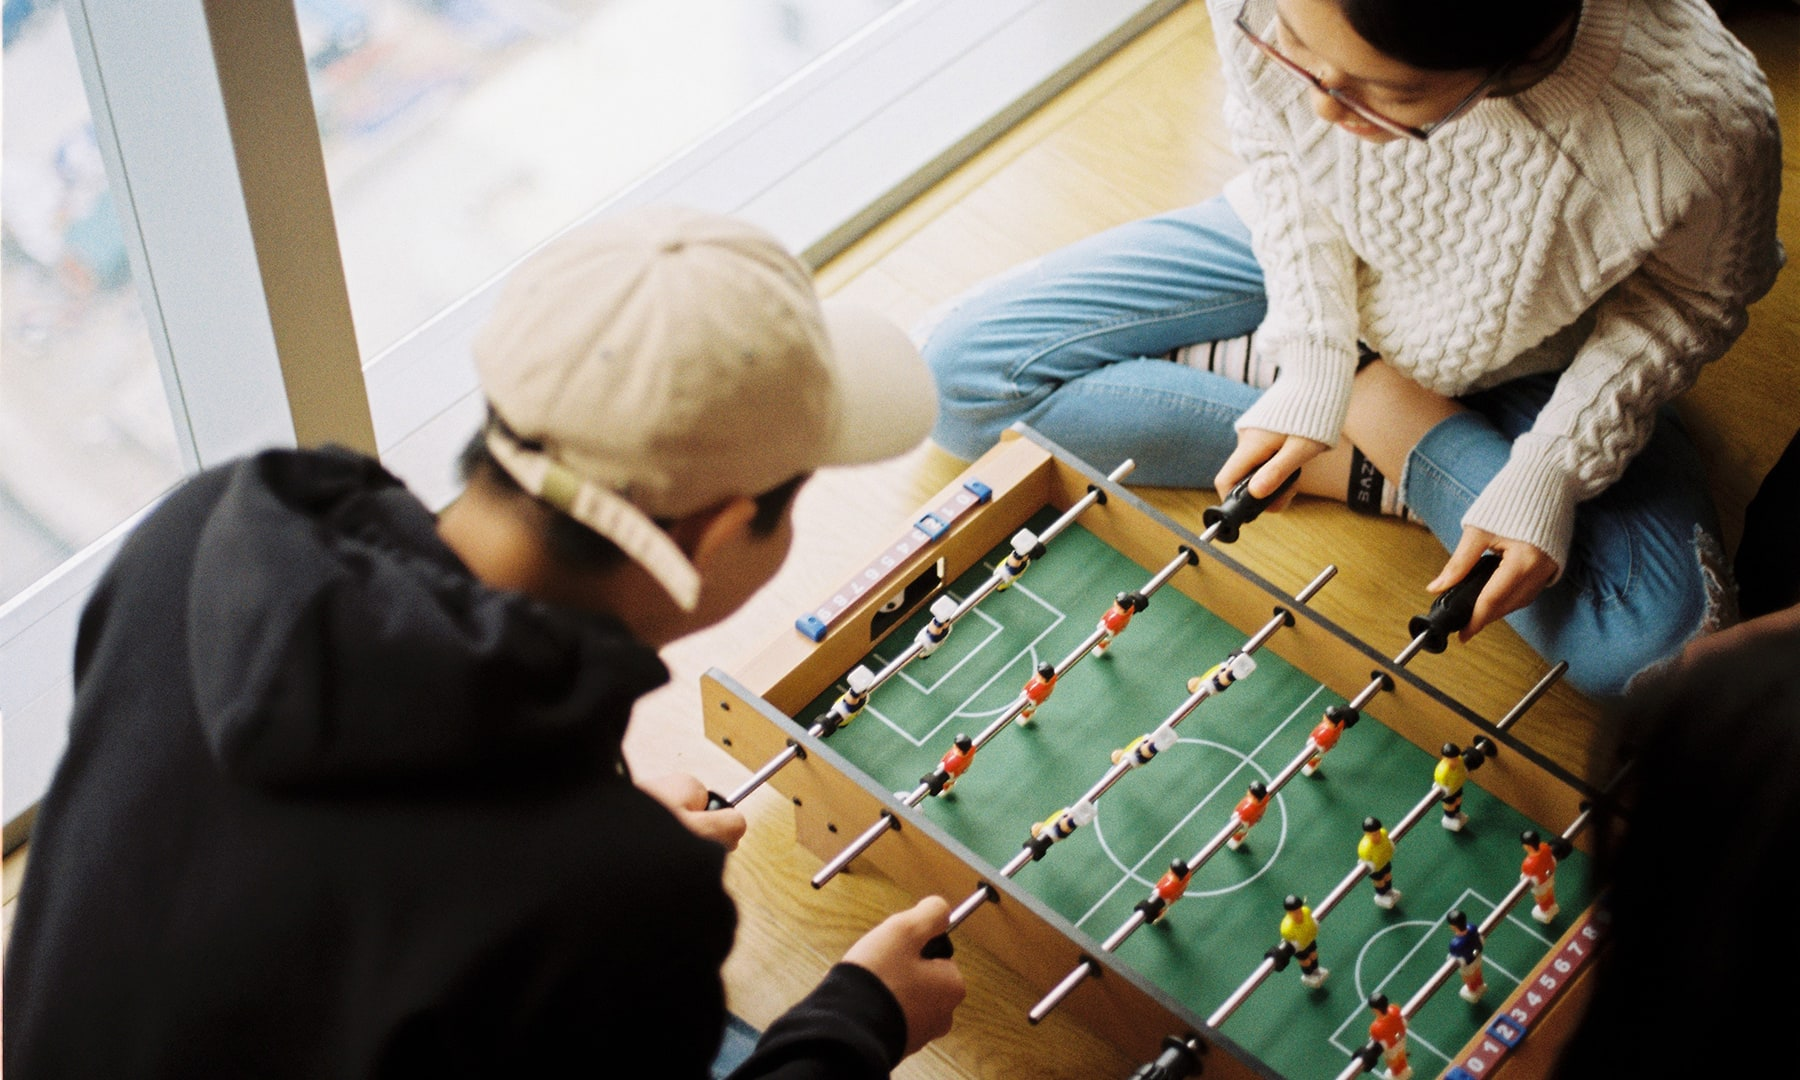 bloomthis-valentines-date-ideas-couple-playing-games-together